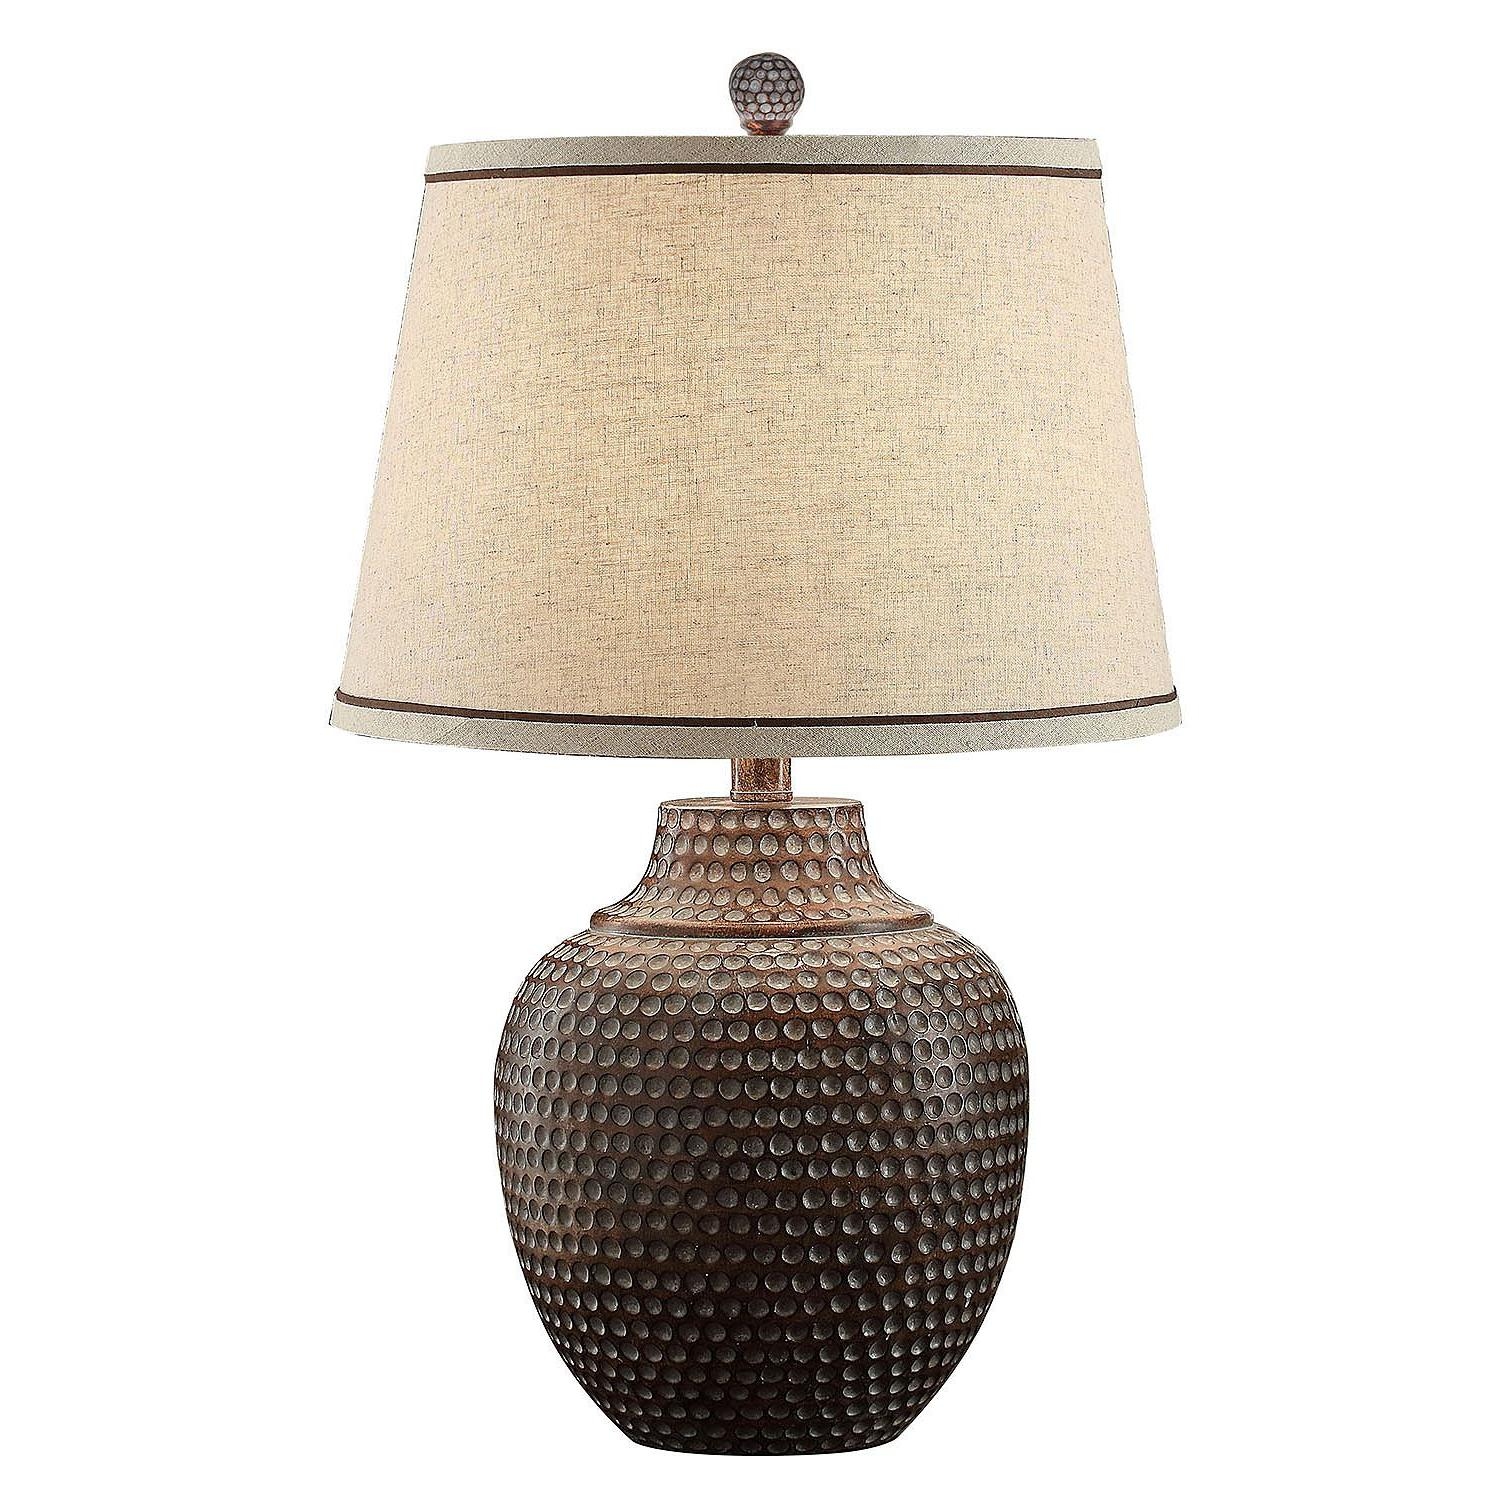 Carlin Collection Hammered Table Lamp in Rustic Bronze Brown